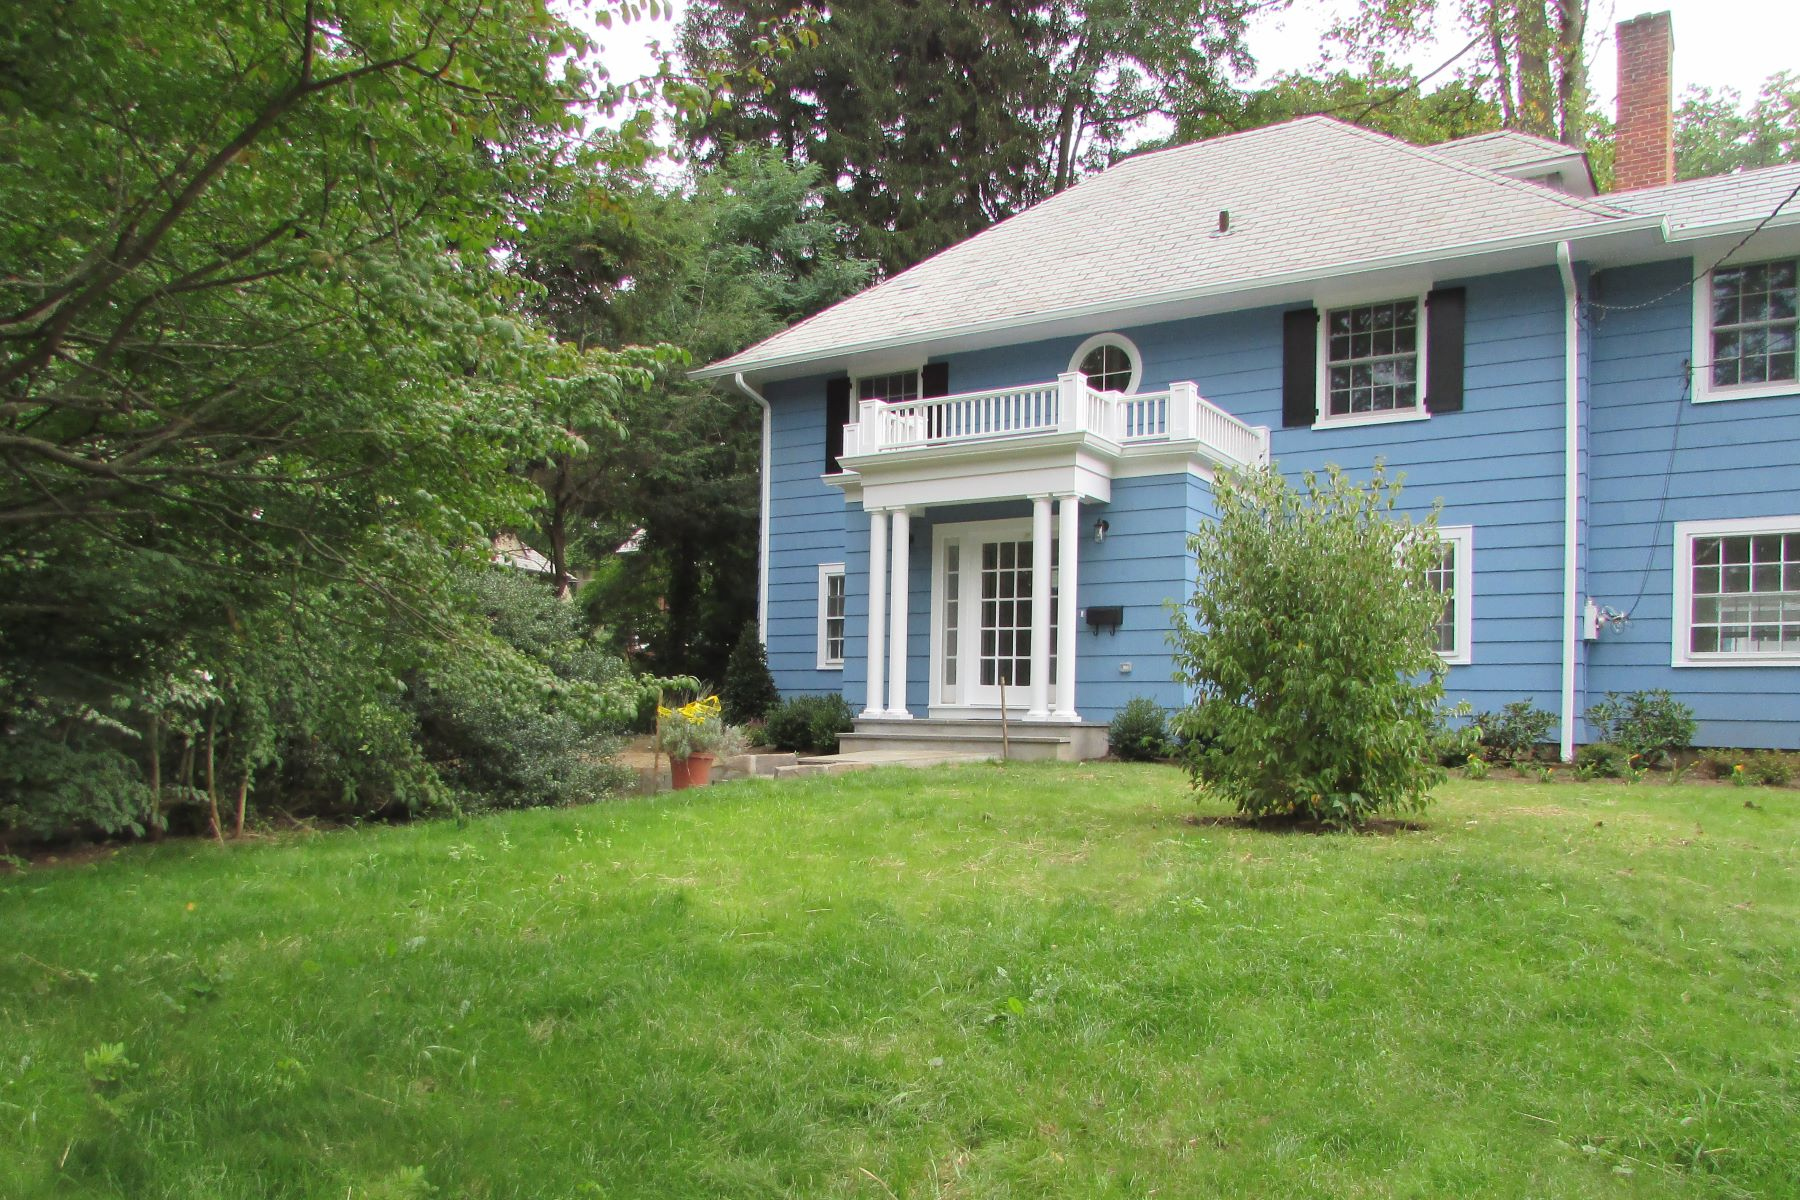 Single Family Home for Rent at Newly Expanded, Renovated Center Hall Colonial 5 Lockwood Road Scarsdale, New York 10583 United States